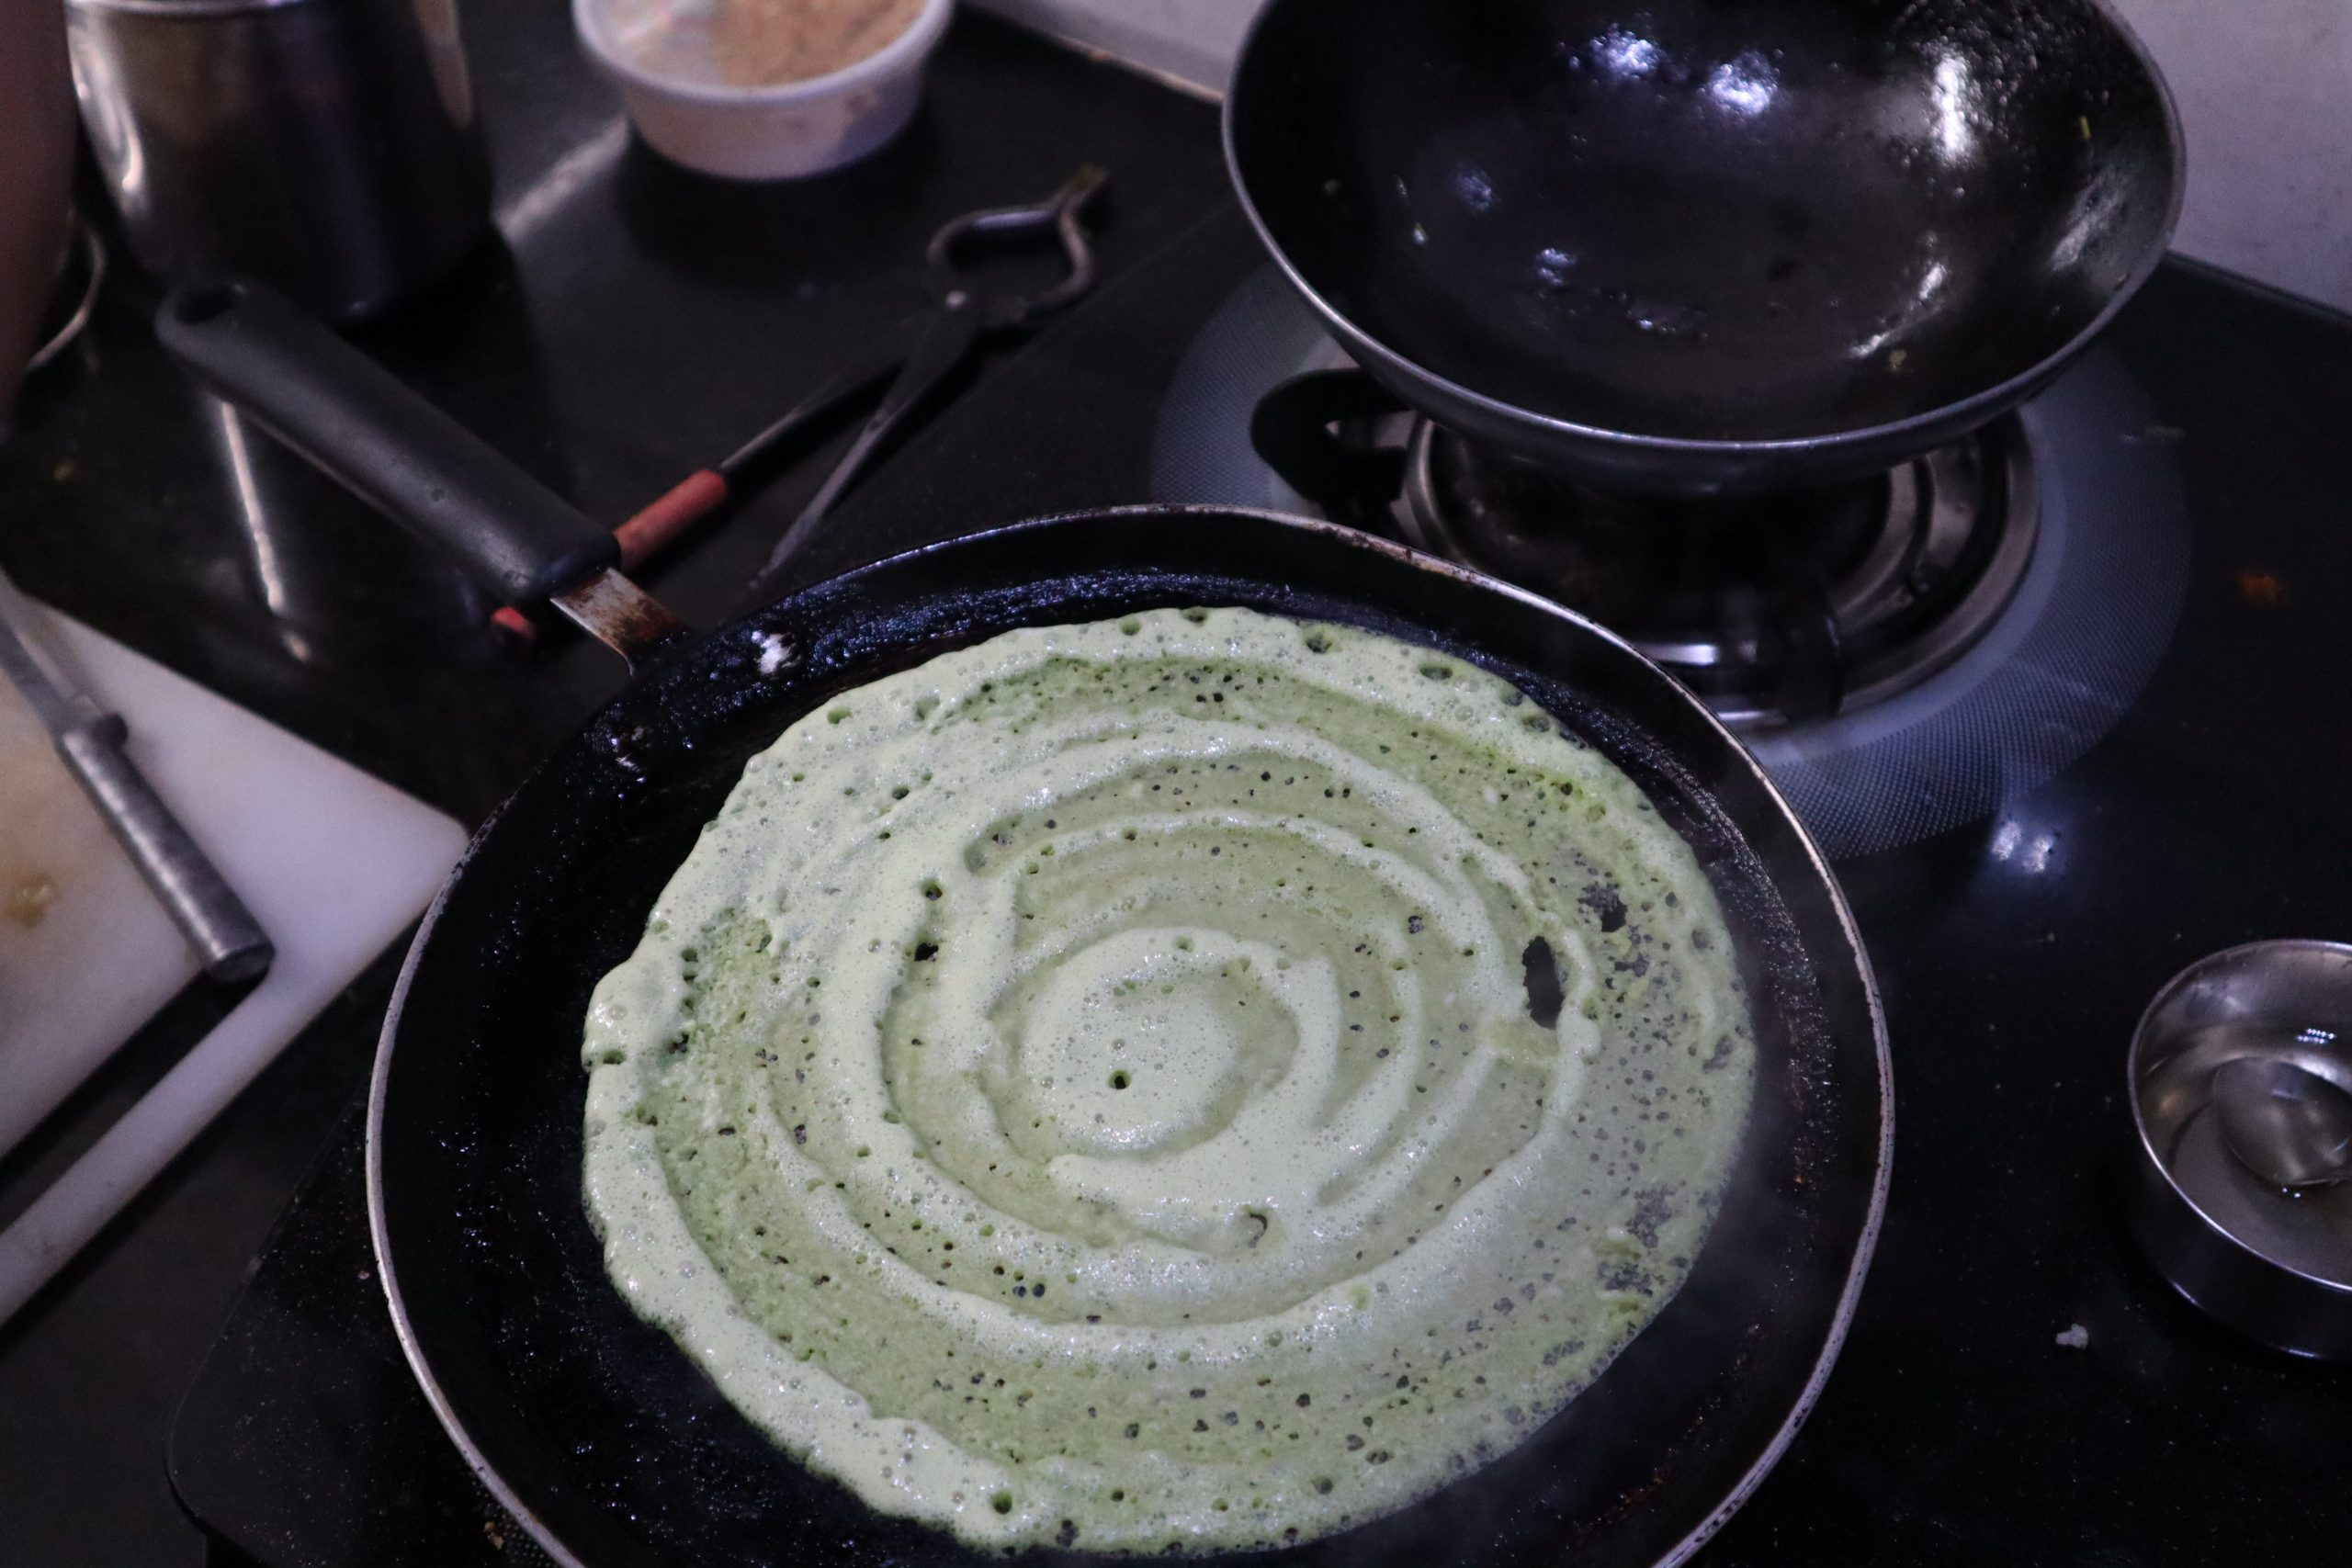 dosa being cooked